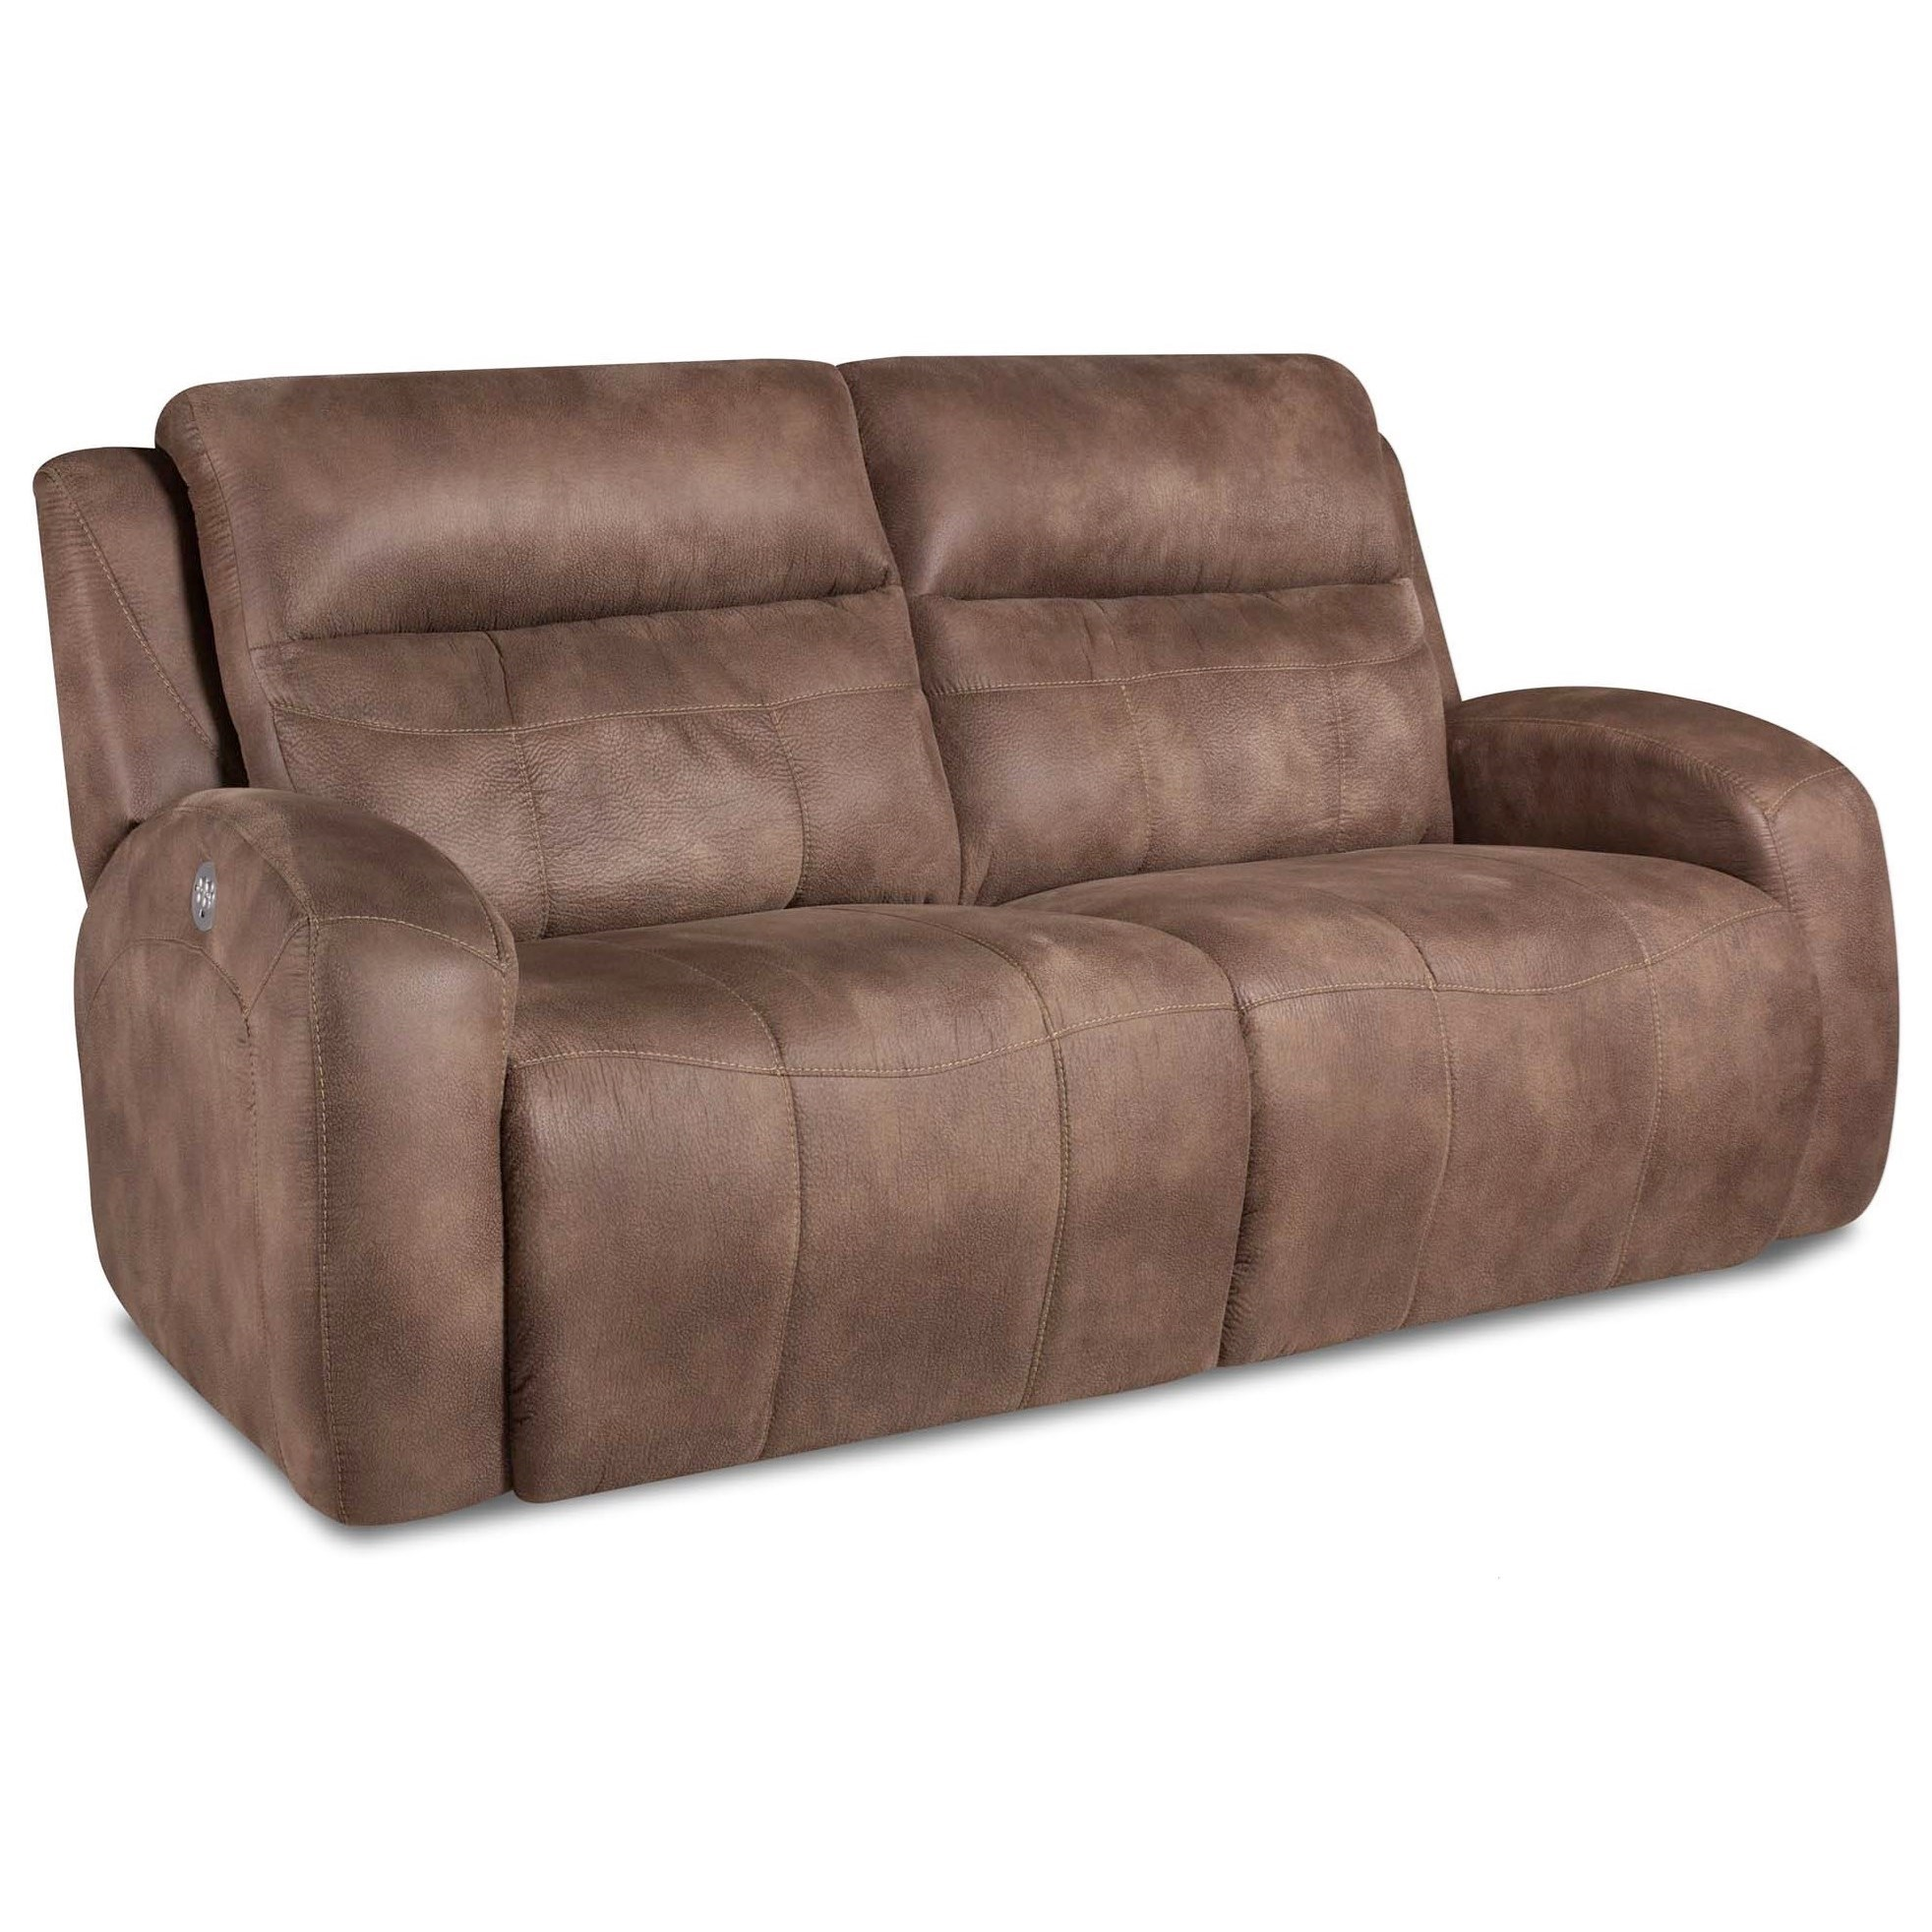 Southern Motion Flight Power Reclining Sofa - Item Number: 868-40P-288-16